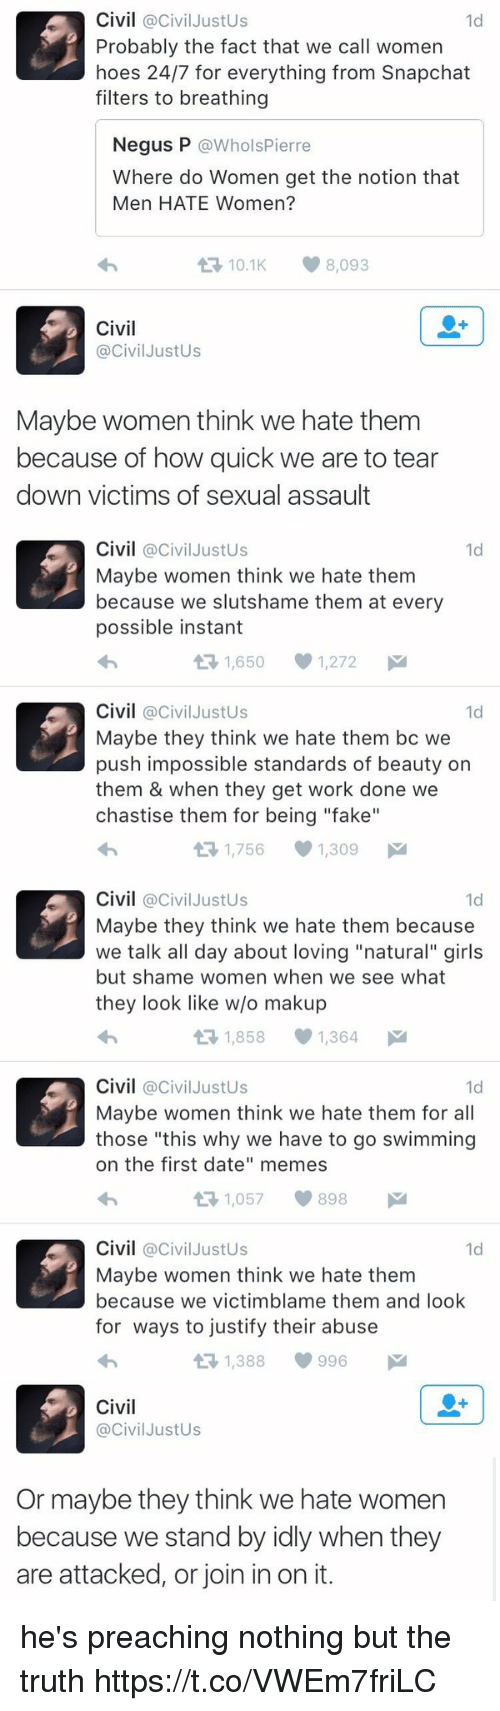 "Fake, Girls, and Hoes: Civil @Civil Justus  1d  Probably the fact that we call women  hoes 24/7 for everything from Snapchat  filters to breathing  Negus P  @Whols Pierre  Where do Women get the notion that  Men HATE Women?  t 10.1 8,093  Civil  @Civil JustUs  Maybe women think we hate them  because of how quick we are to tear  down victims of sexual assault   Civil  @Civil Justus  1d  Maybe women think we hate them  because we slutshame them at every  possible instant  1,650 1,272  M  t Civil  Civil JustUs  1d  Maybe they think we hate them bc we  push impossible standards of beauty on  them & when they get work done we  chastise them for being ""fake""  1,756 1,309  M   Civil  @Civil Justus  1d  Maybe they think we hate them because  we talk all day about loving ""natural"" girls  but shame women when we see what  they look like w/o makup  1,858 1,364  M  t Civil  @Civil Justus  1d  Maybe women think we hate them for all  those ""this why we have to go swimming  on the first date"" memes  1,057 898  M  t Civil  @Civil Justus  1d  Maybe women think we hate them  because we victimblame them and look  for ways to justify their abuse  t 1,388 996   Civil  Civil JustUs  Or maybe they think we hate women  because we stand by idly when they  are attacked, or join in on it. he's preaching nothing but the truth https://t.co/VWEm7friLC"